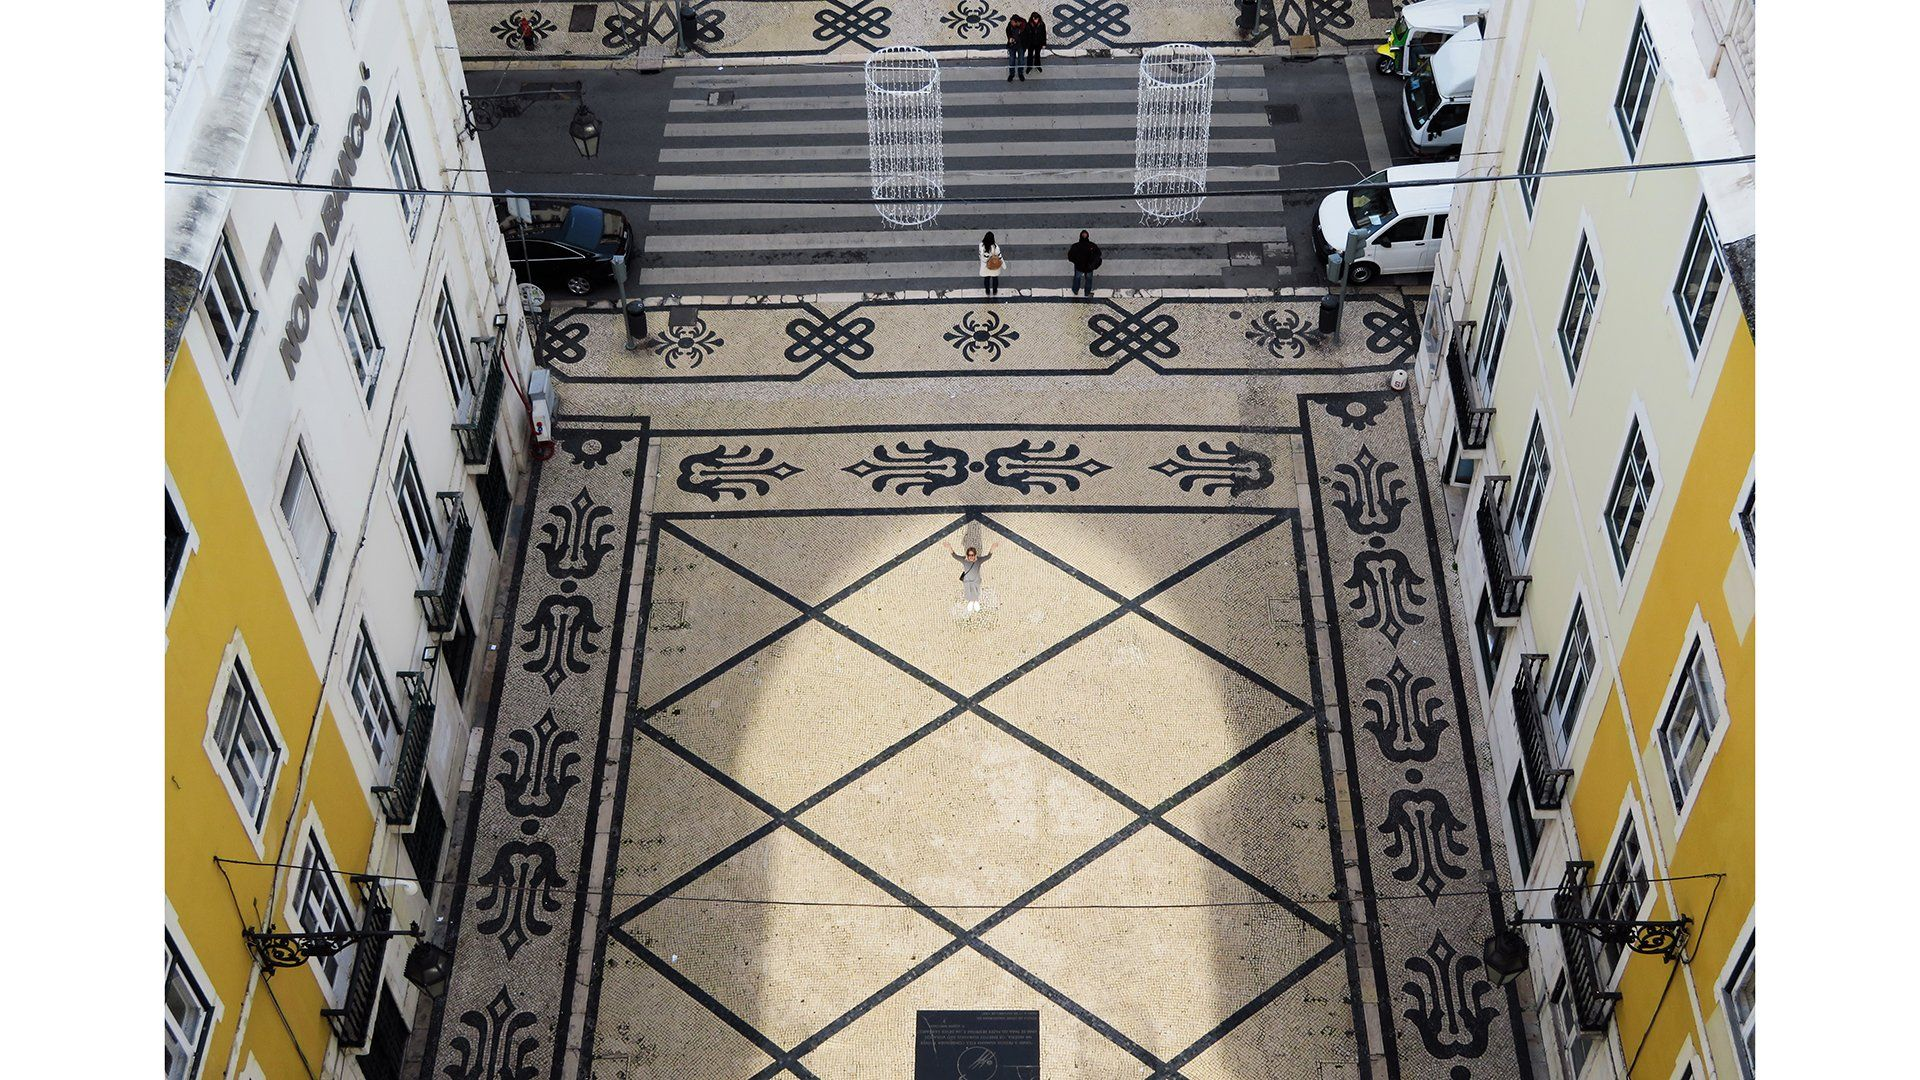 A shot taken from the top of a high building shows a pretty old courtyard with patterned tiled floors and a staircase. On the left and right are yellow and white building fronts.